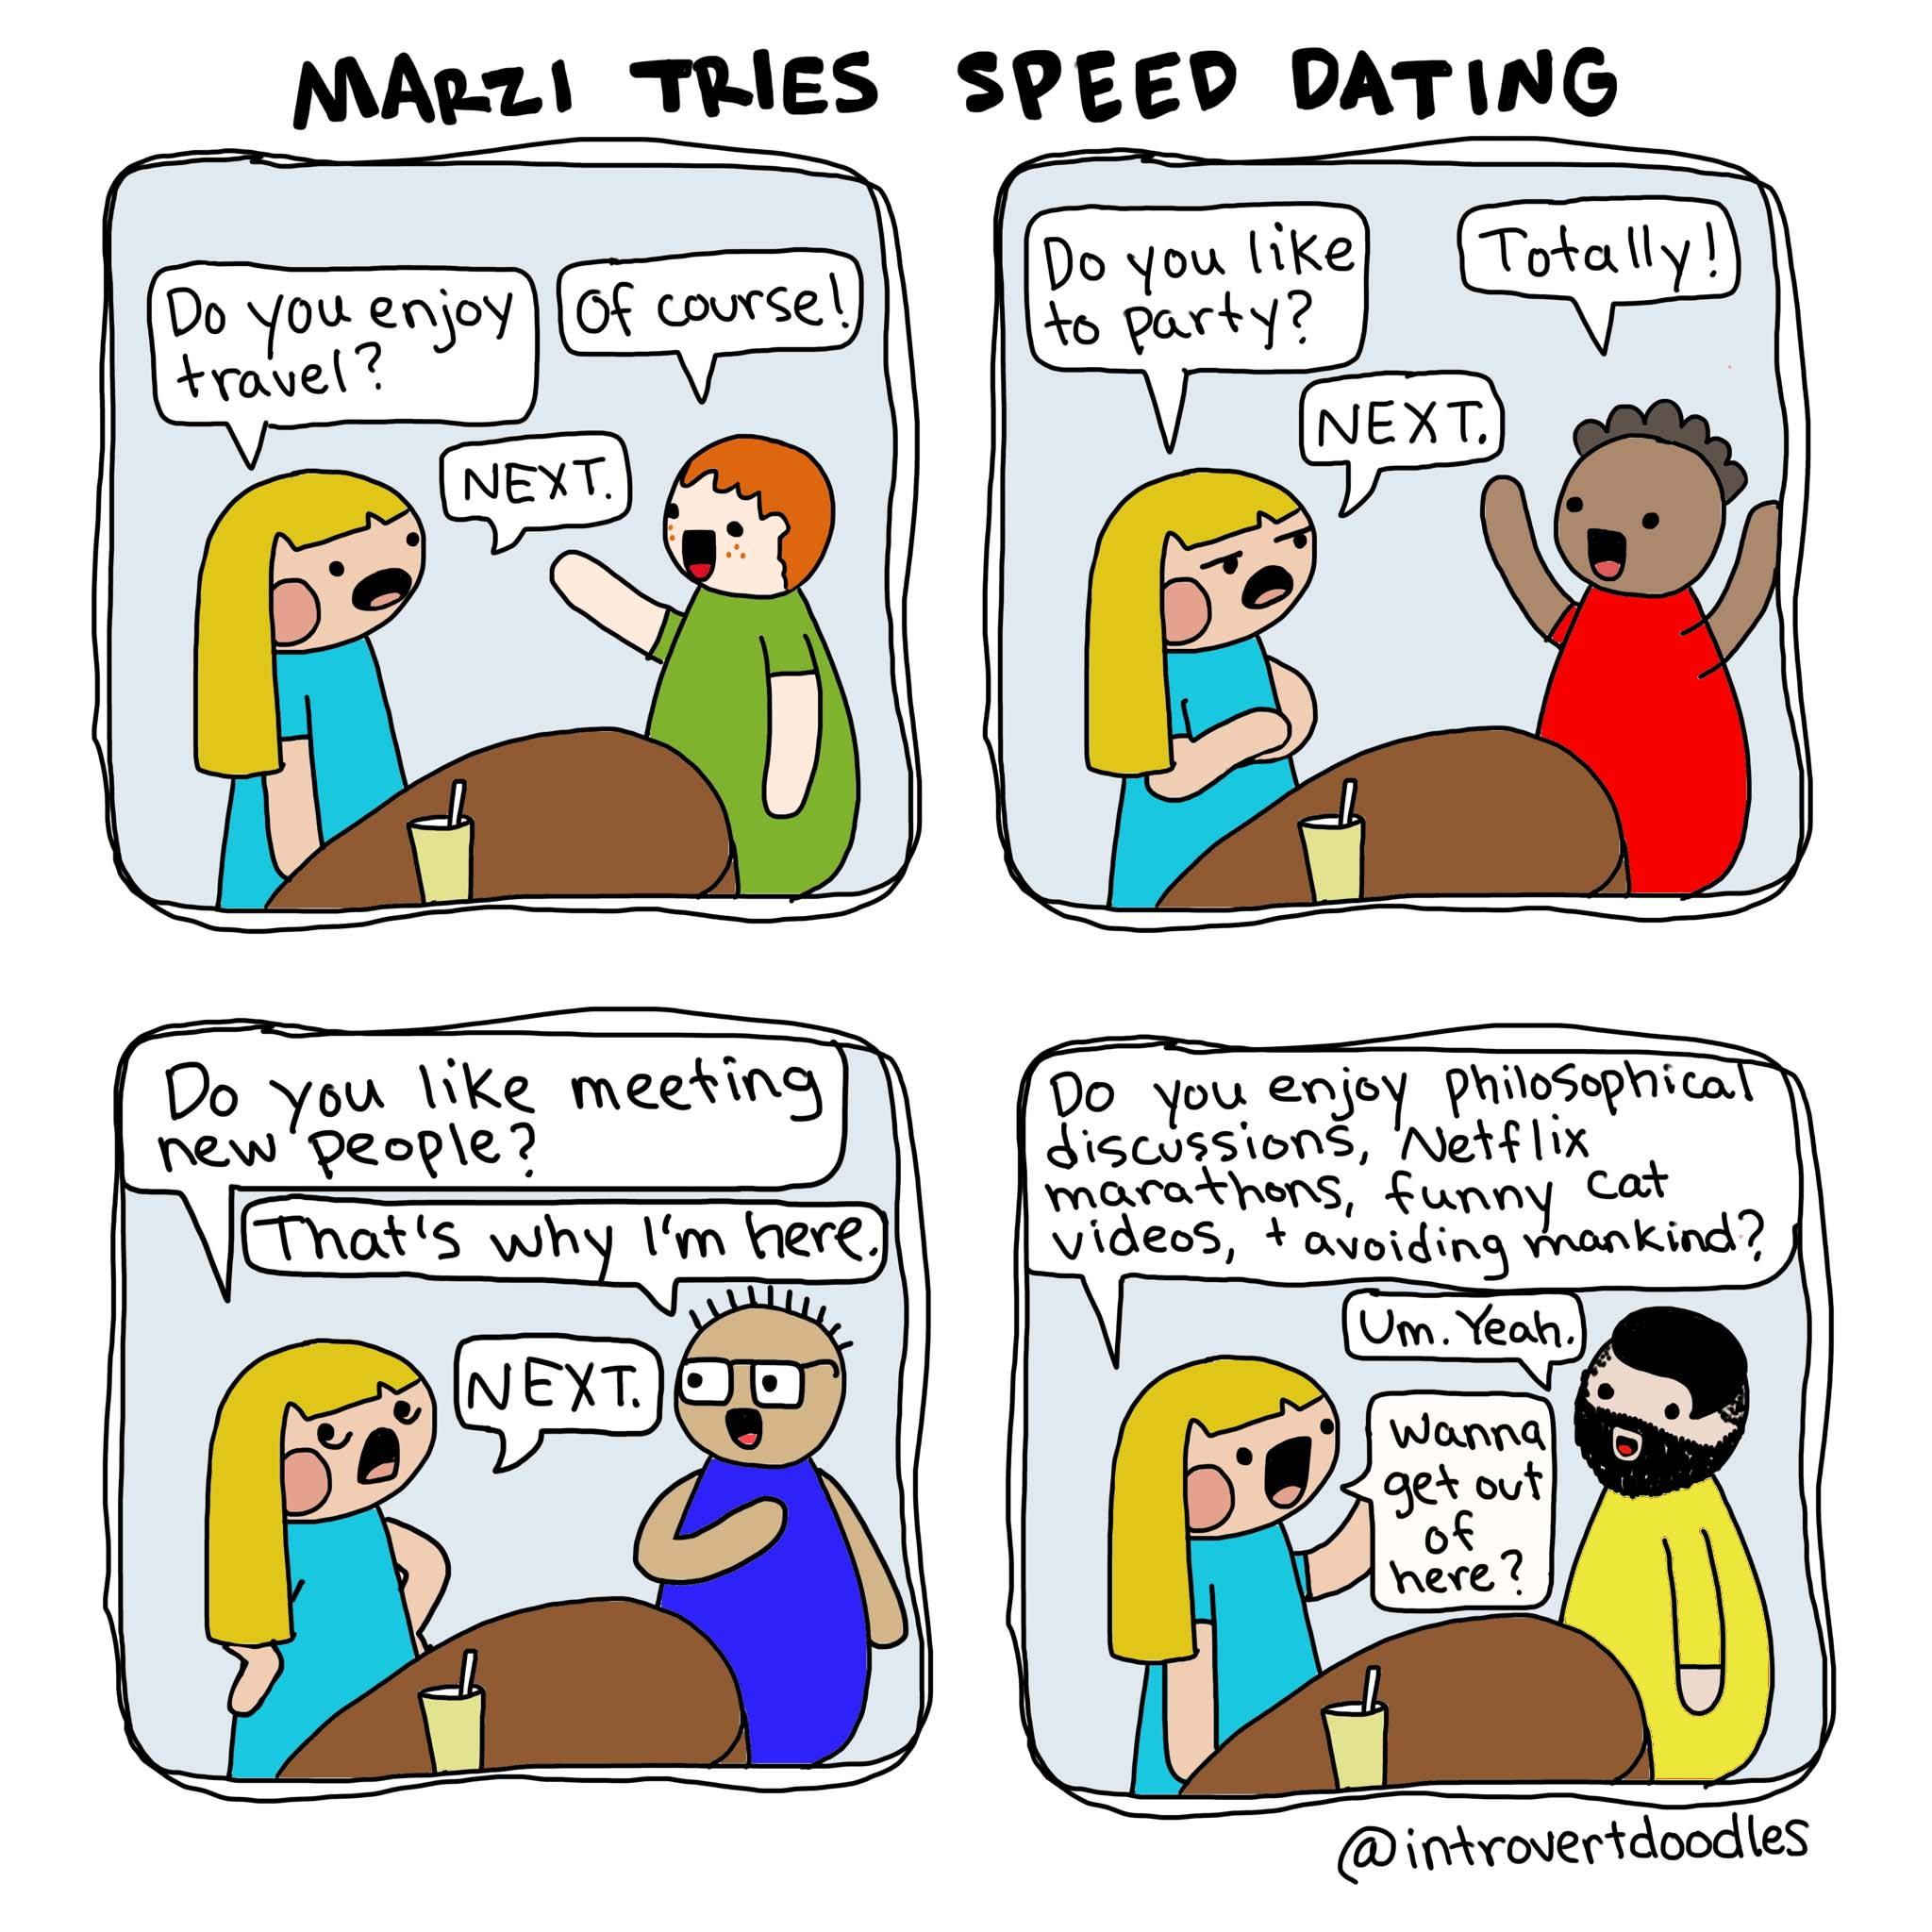 Getout.ie speed dating